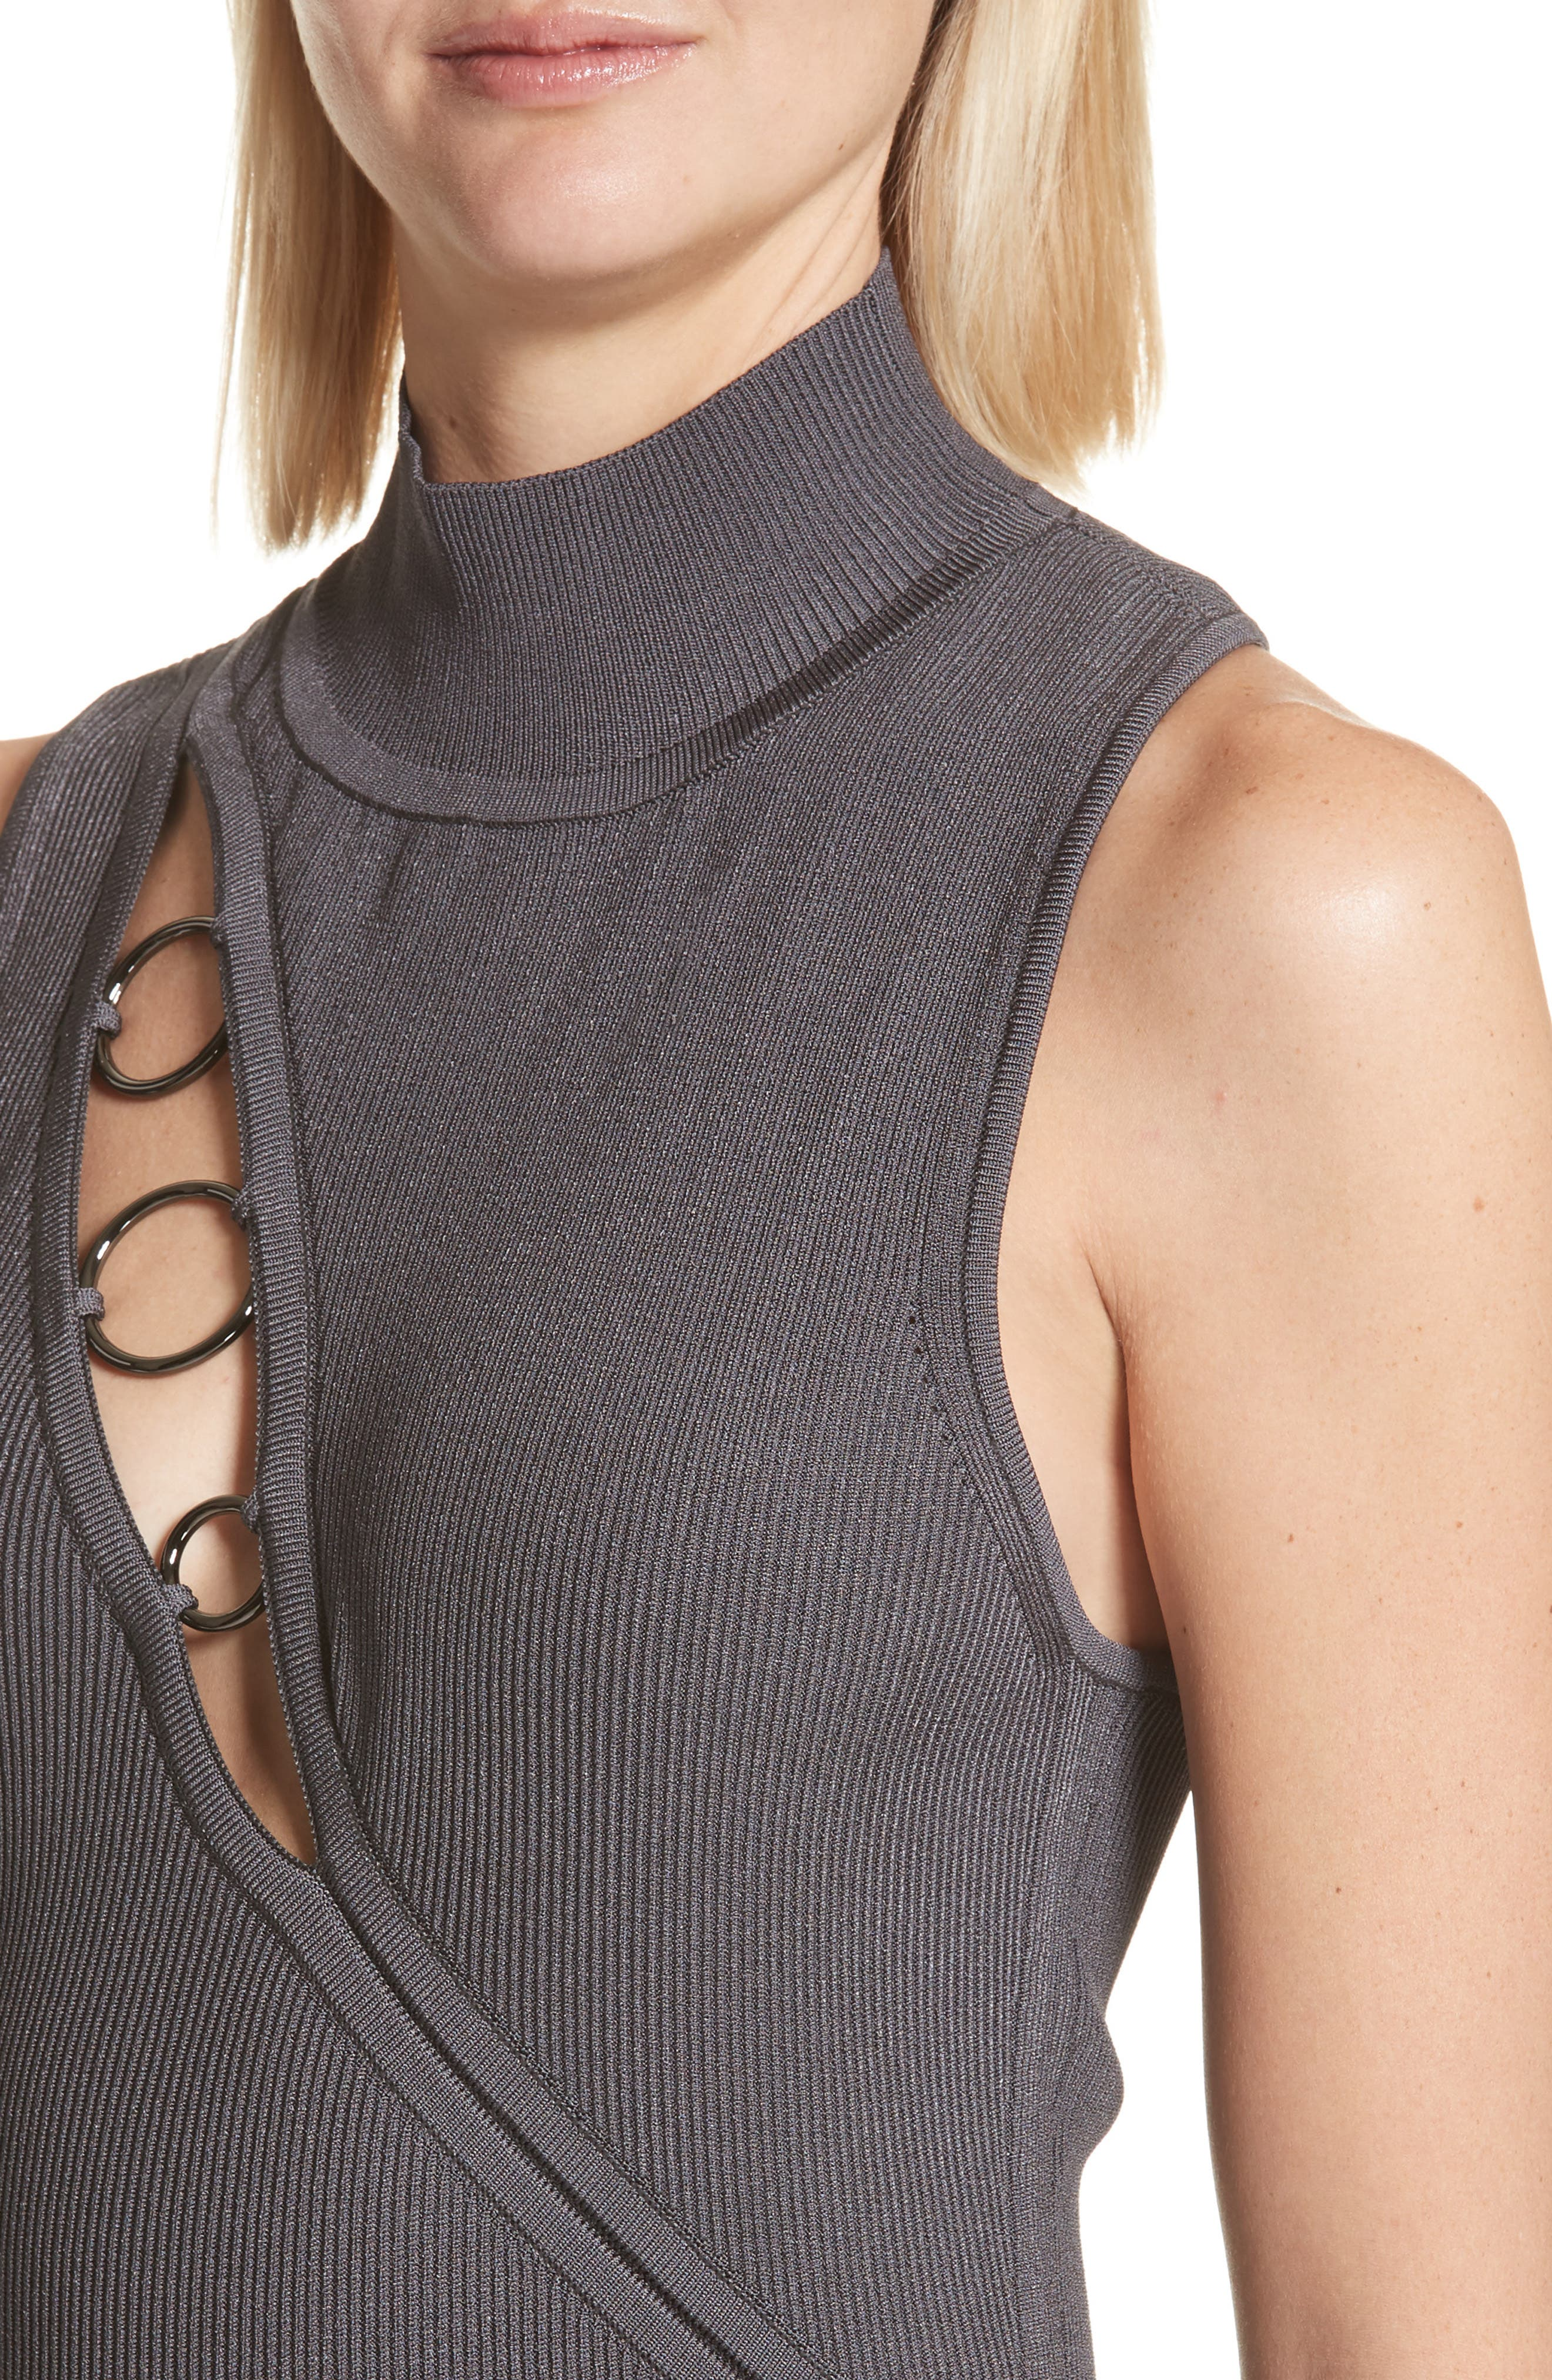 Alsia Cutout Knit Dress,                             Alternate thumbnail 4, color,                             Graphite/ Gunmetal